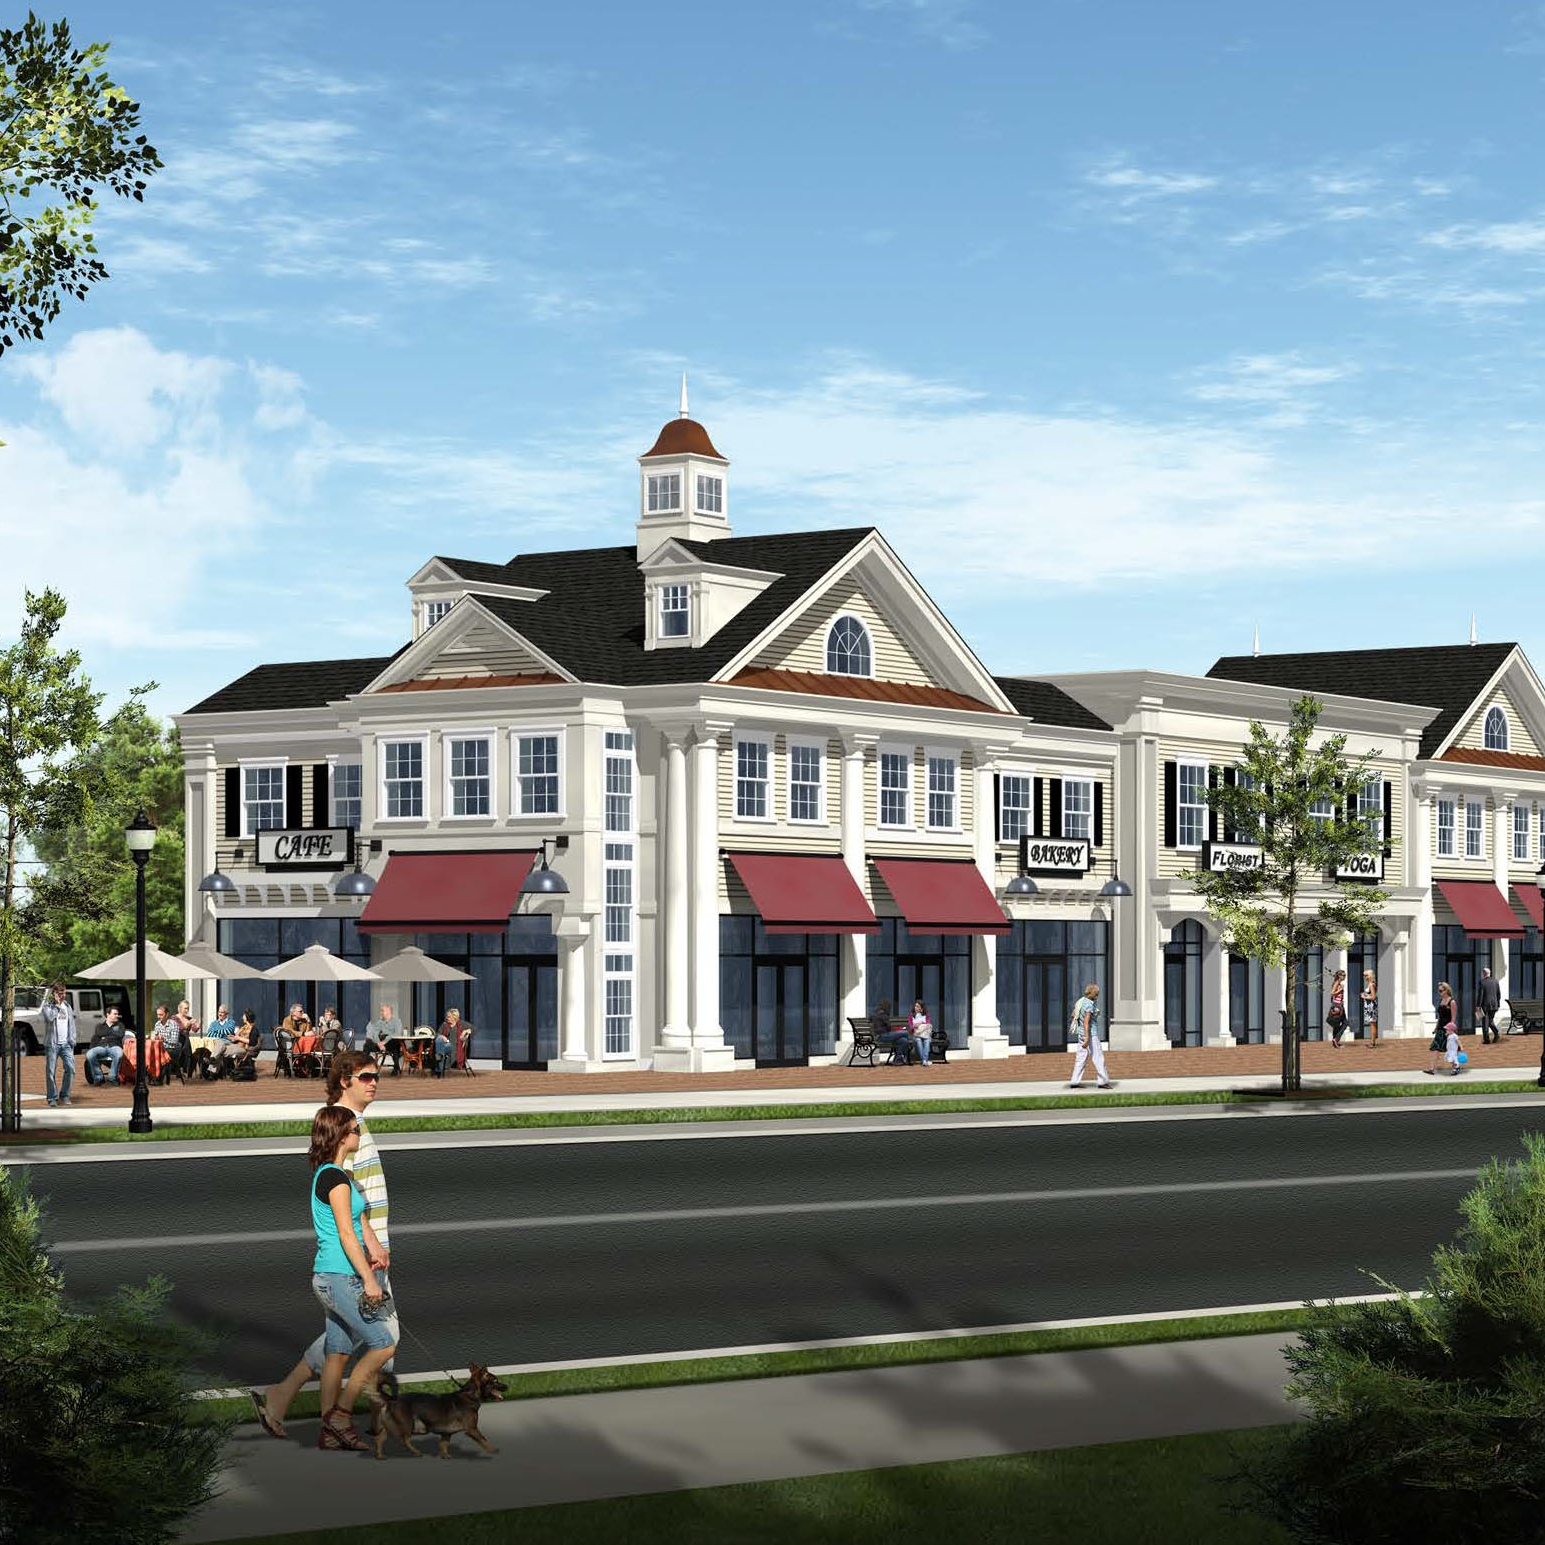 Cranbury High Point, rendering by Zampolin Architects